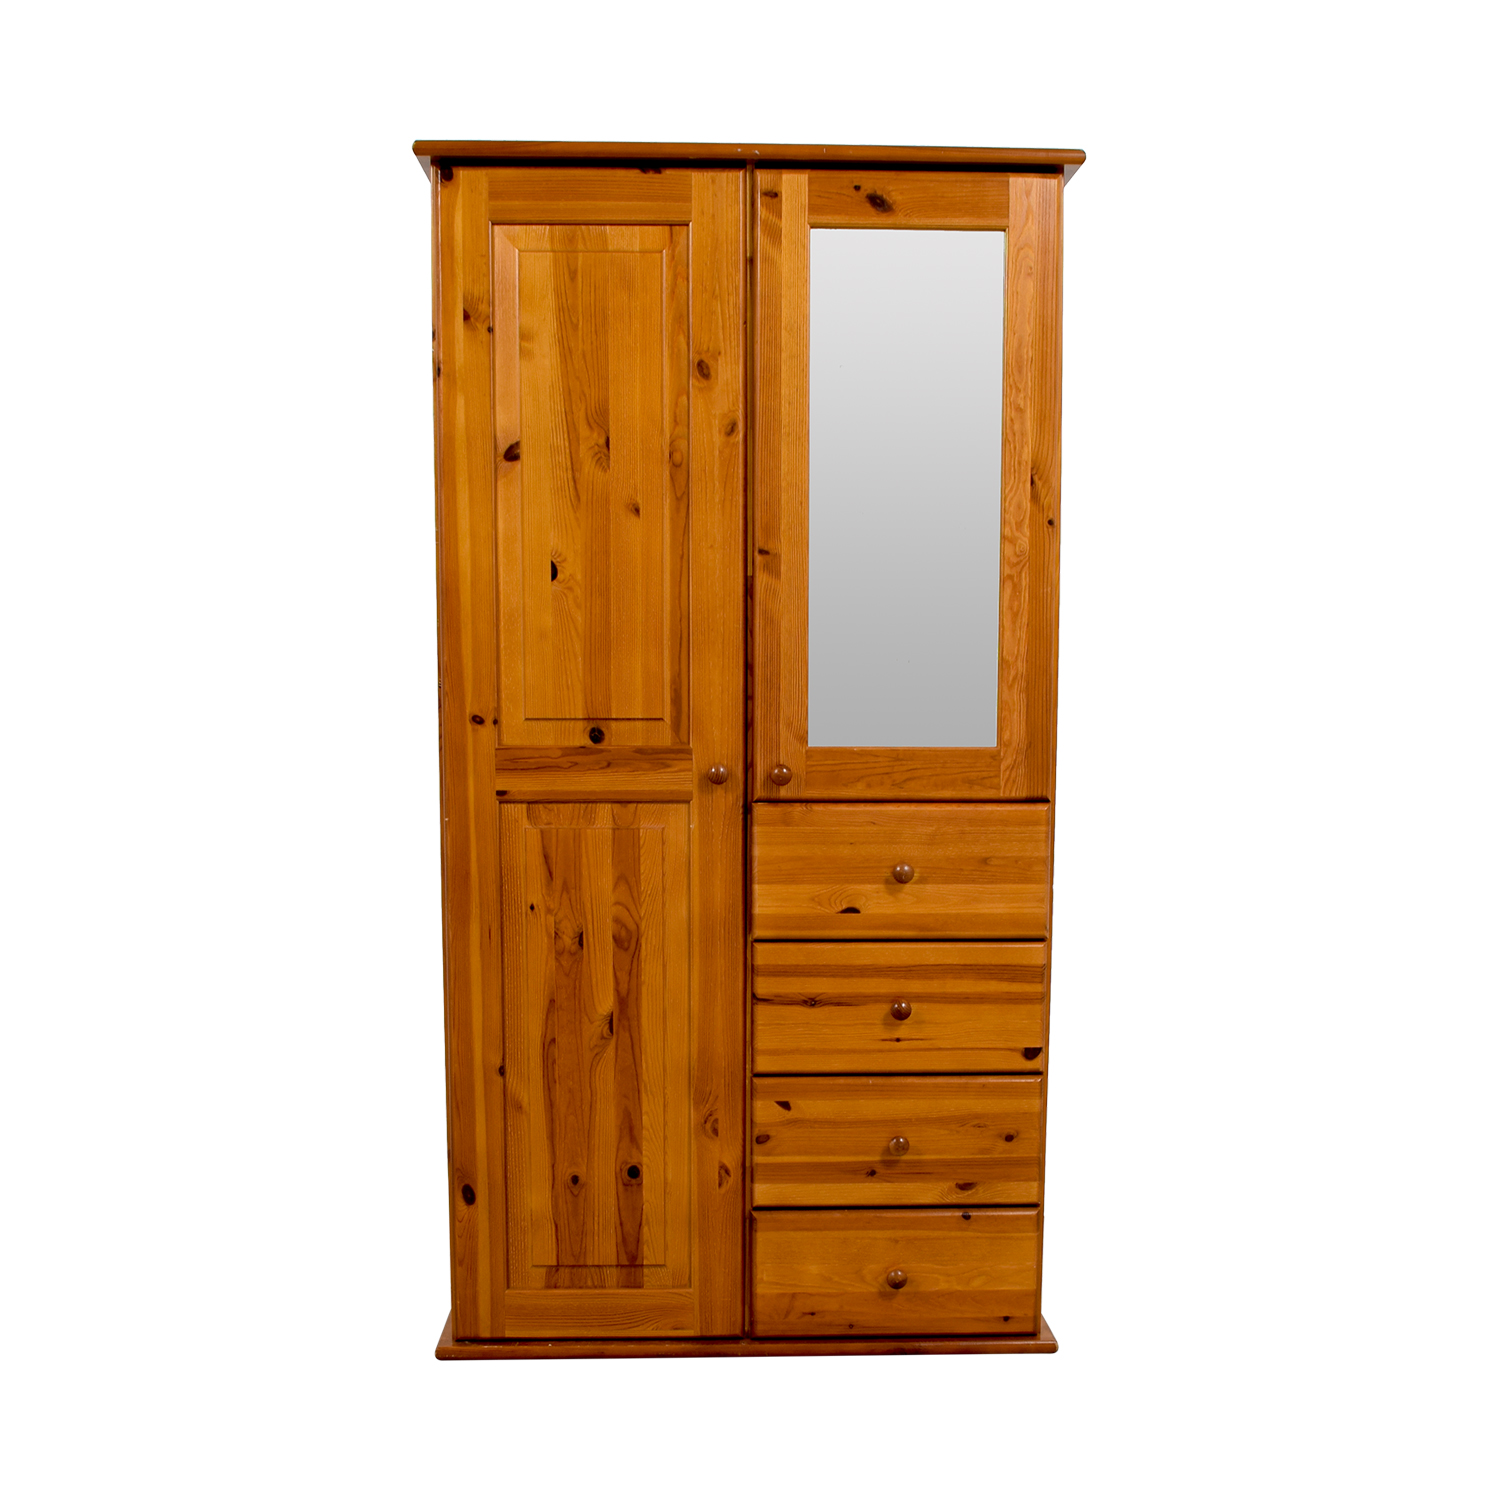 Wood Armoire with Rack Drawers and Shelves coupon